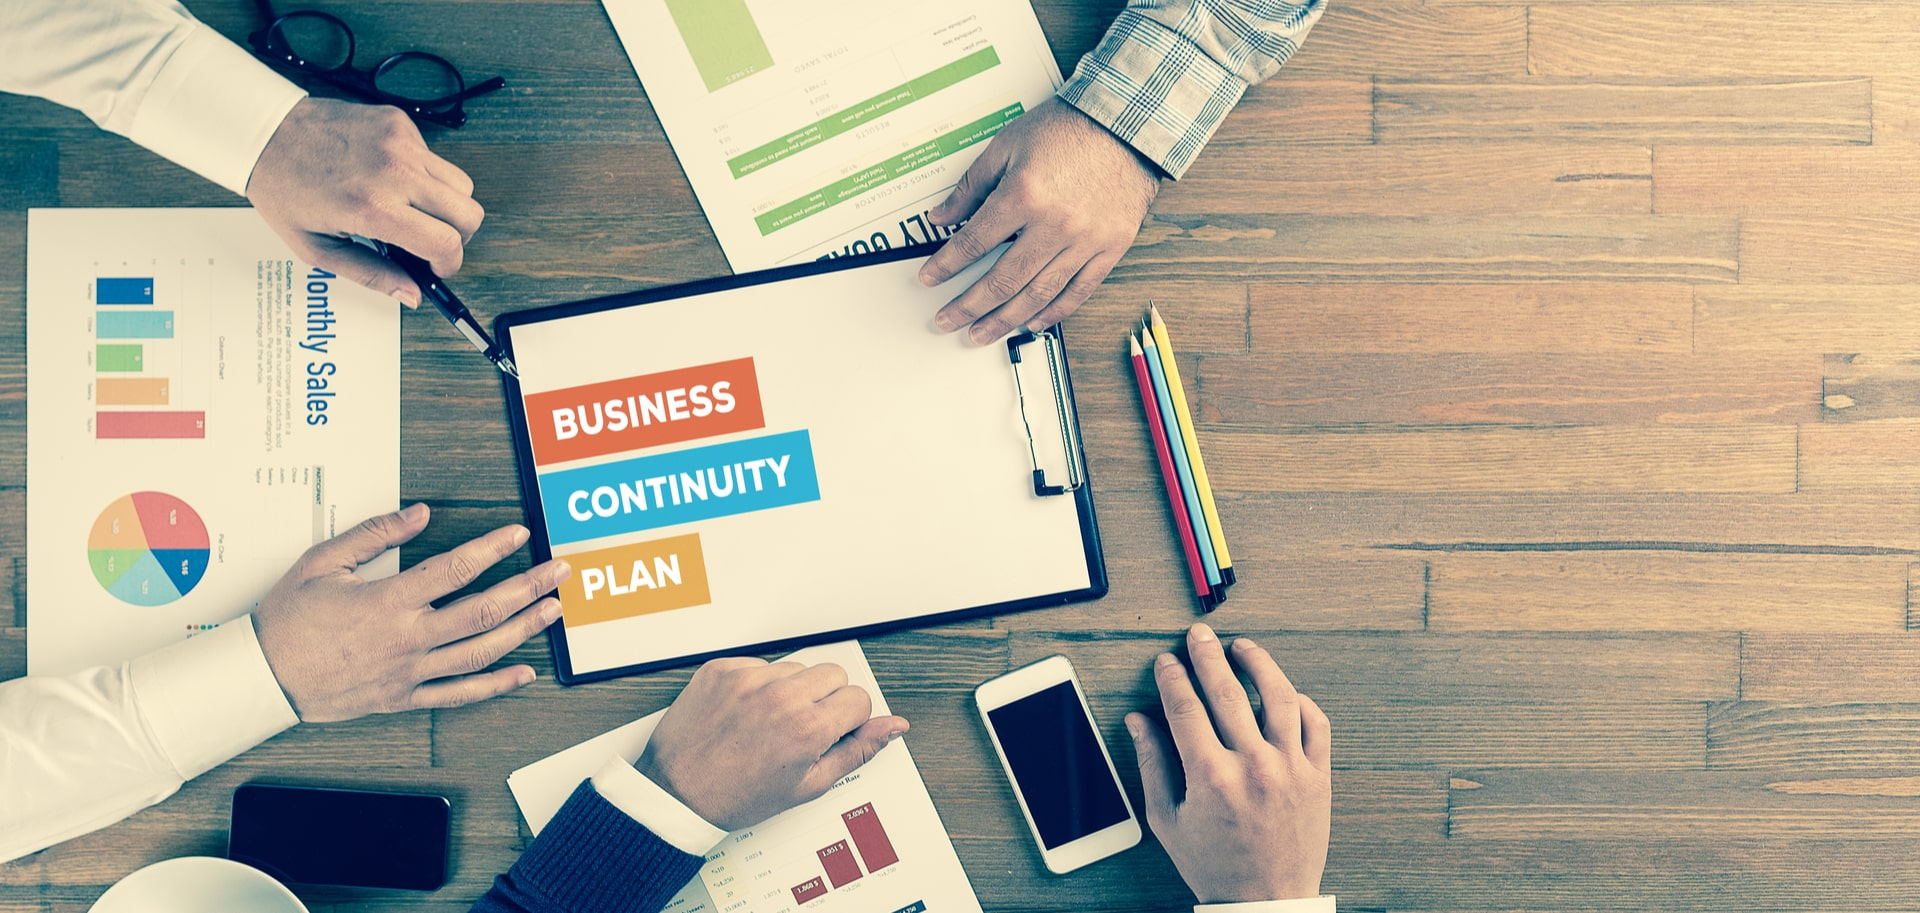 Whiteboard with words business continuity plan